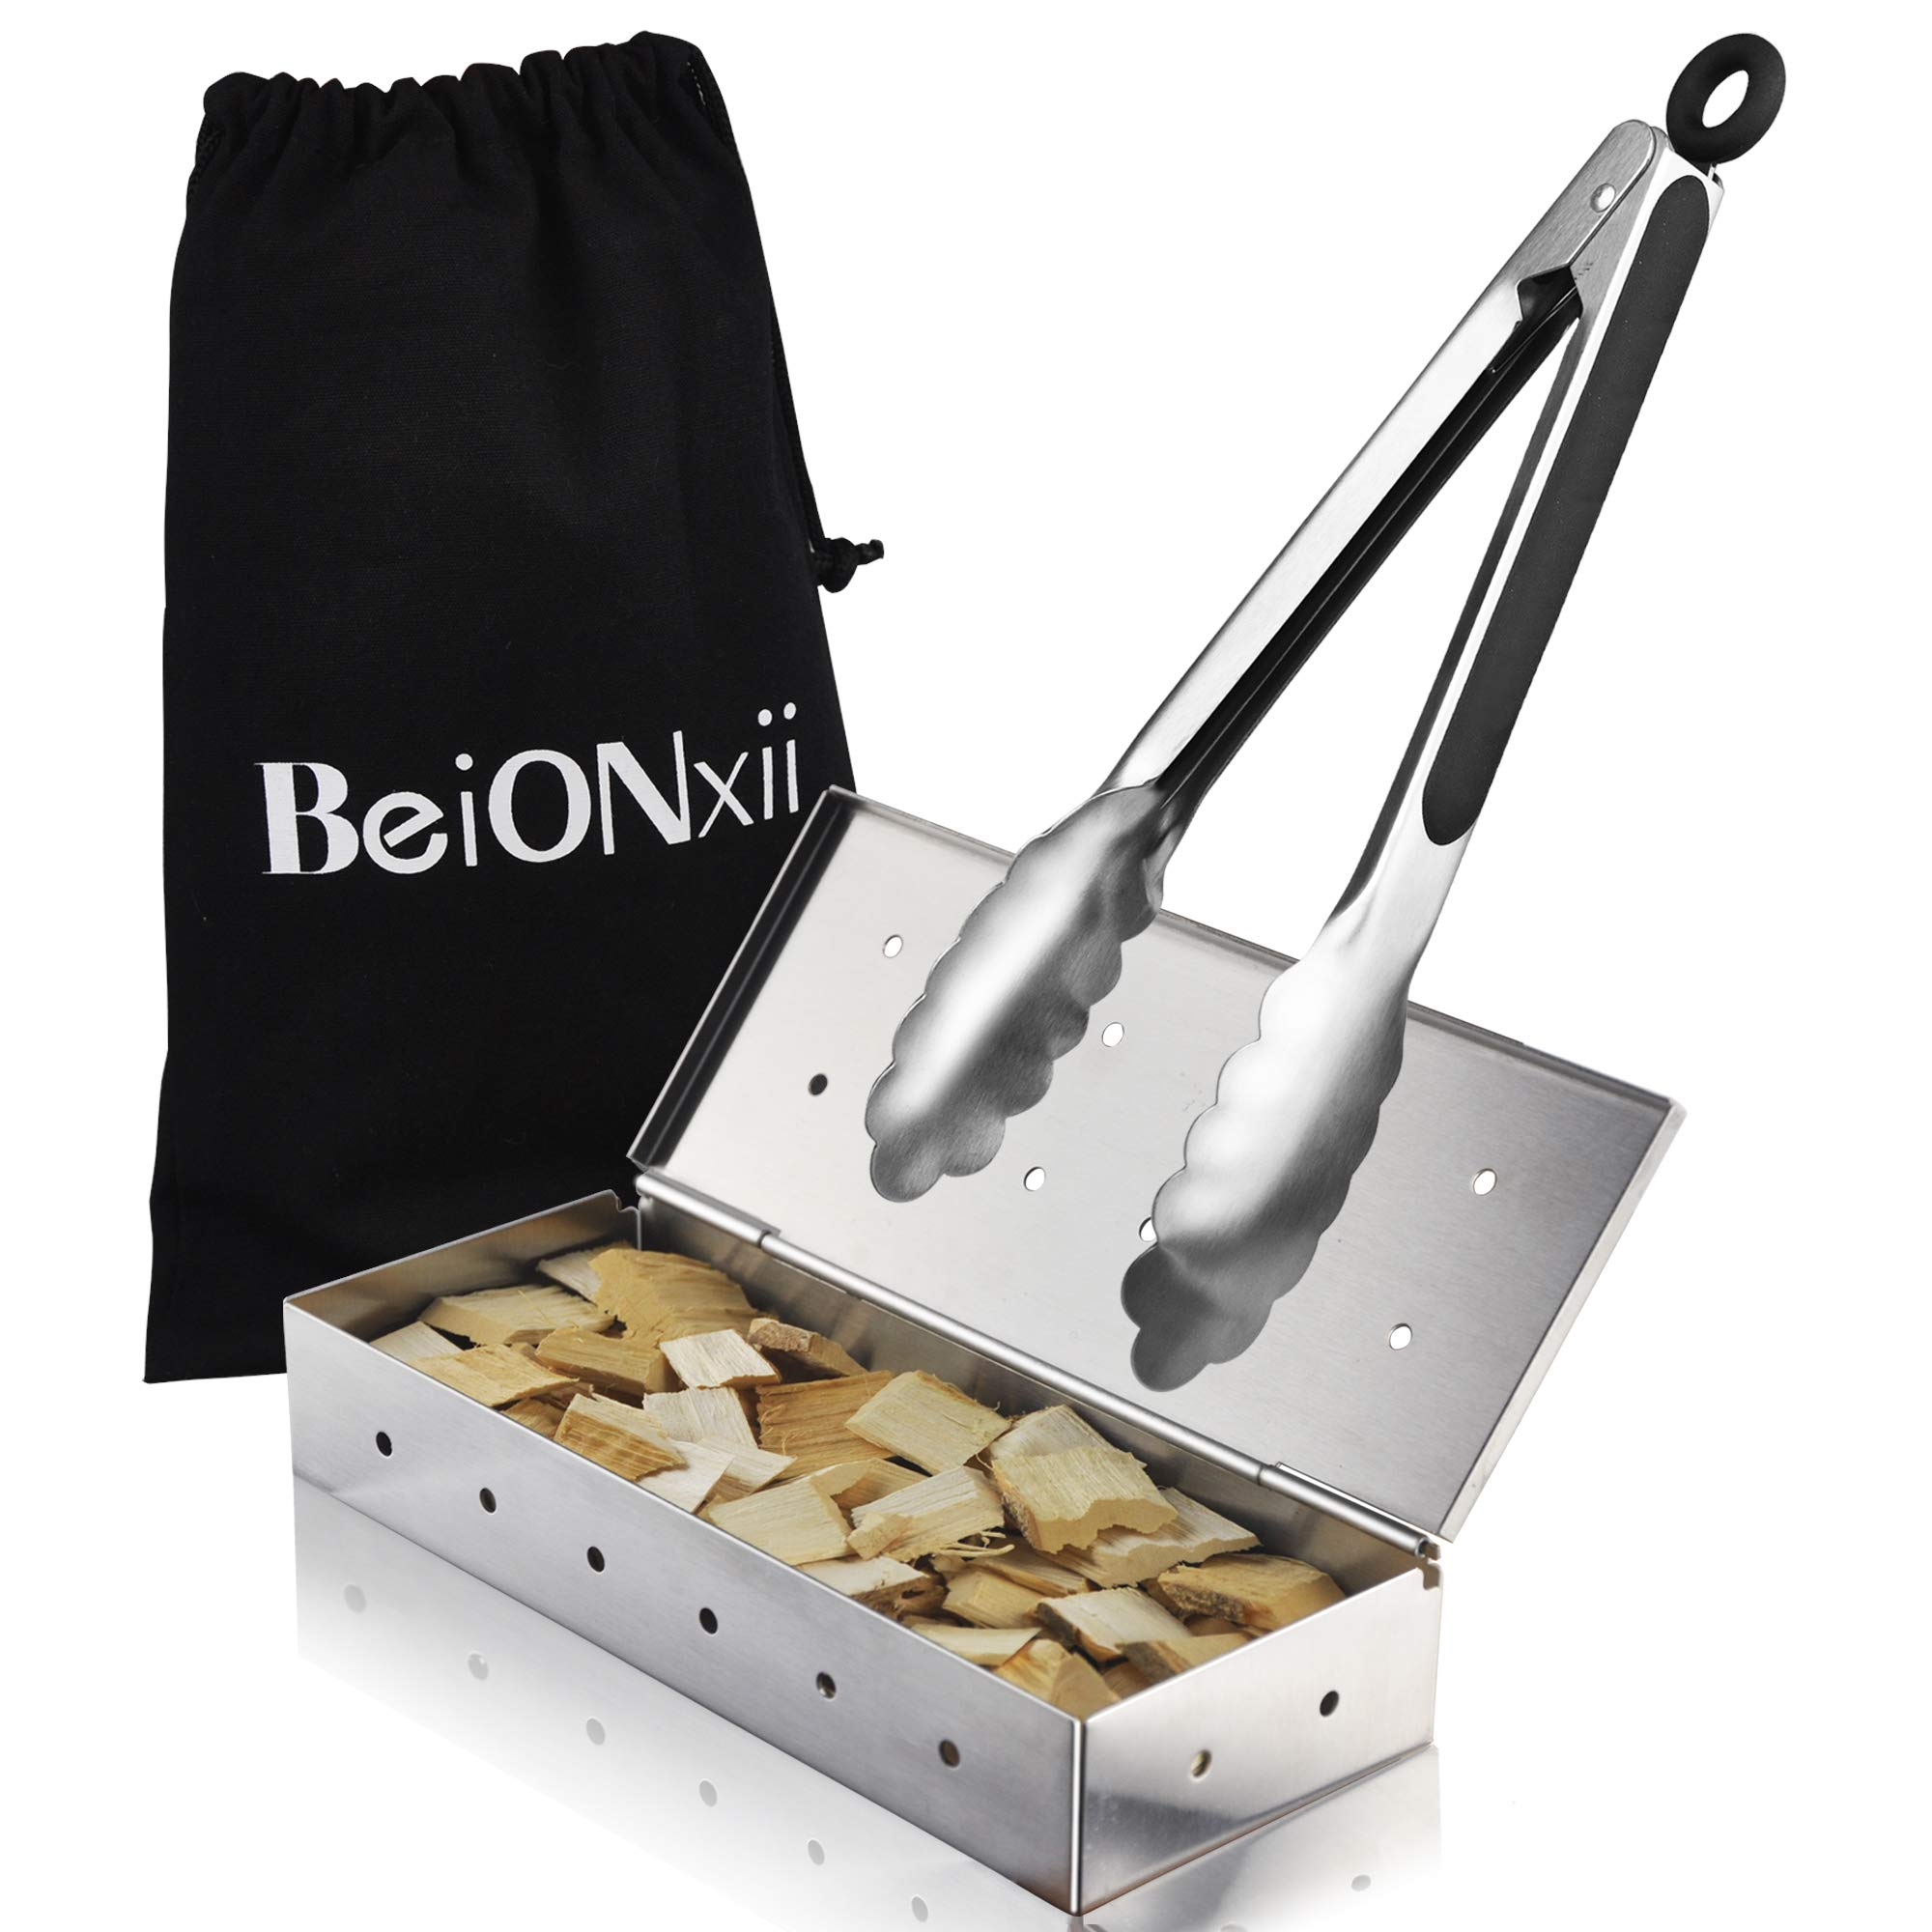 Smoker Box for Gas Grill - Beionxii Charcoal Electric Grill with Tongs Wood Chip BBQ Heavy Duty Stainless Steel Smoker Box Grilling Accessories for Barbecue Meat Smoking Gifts for Man Dishwasher Safe by Beionxii